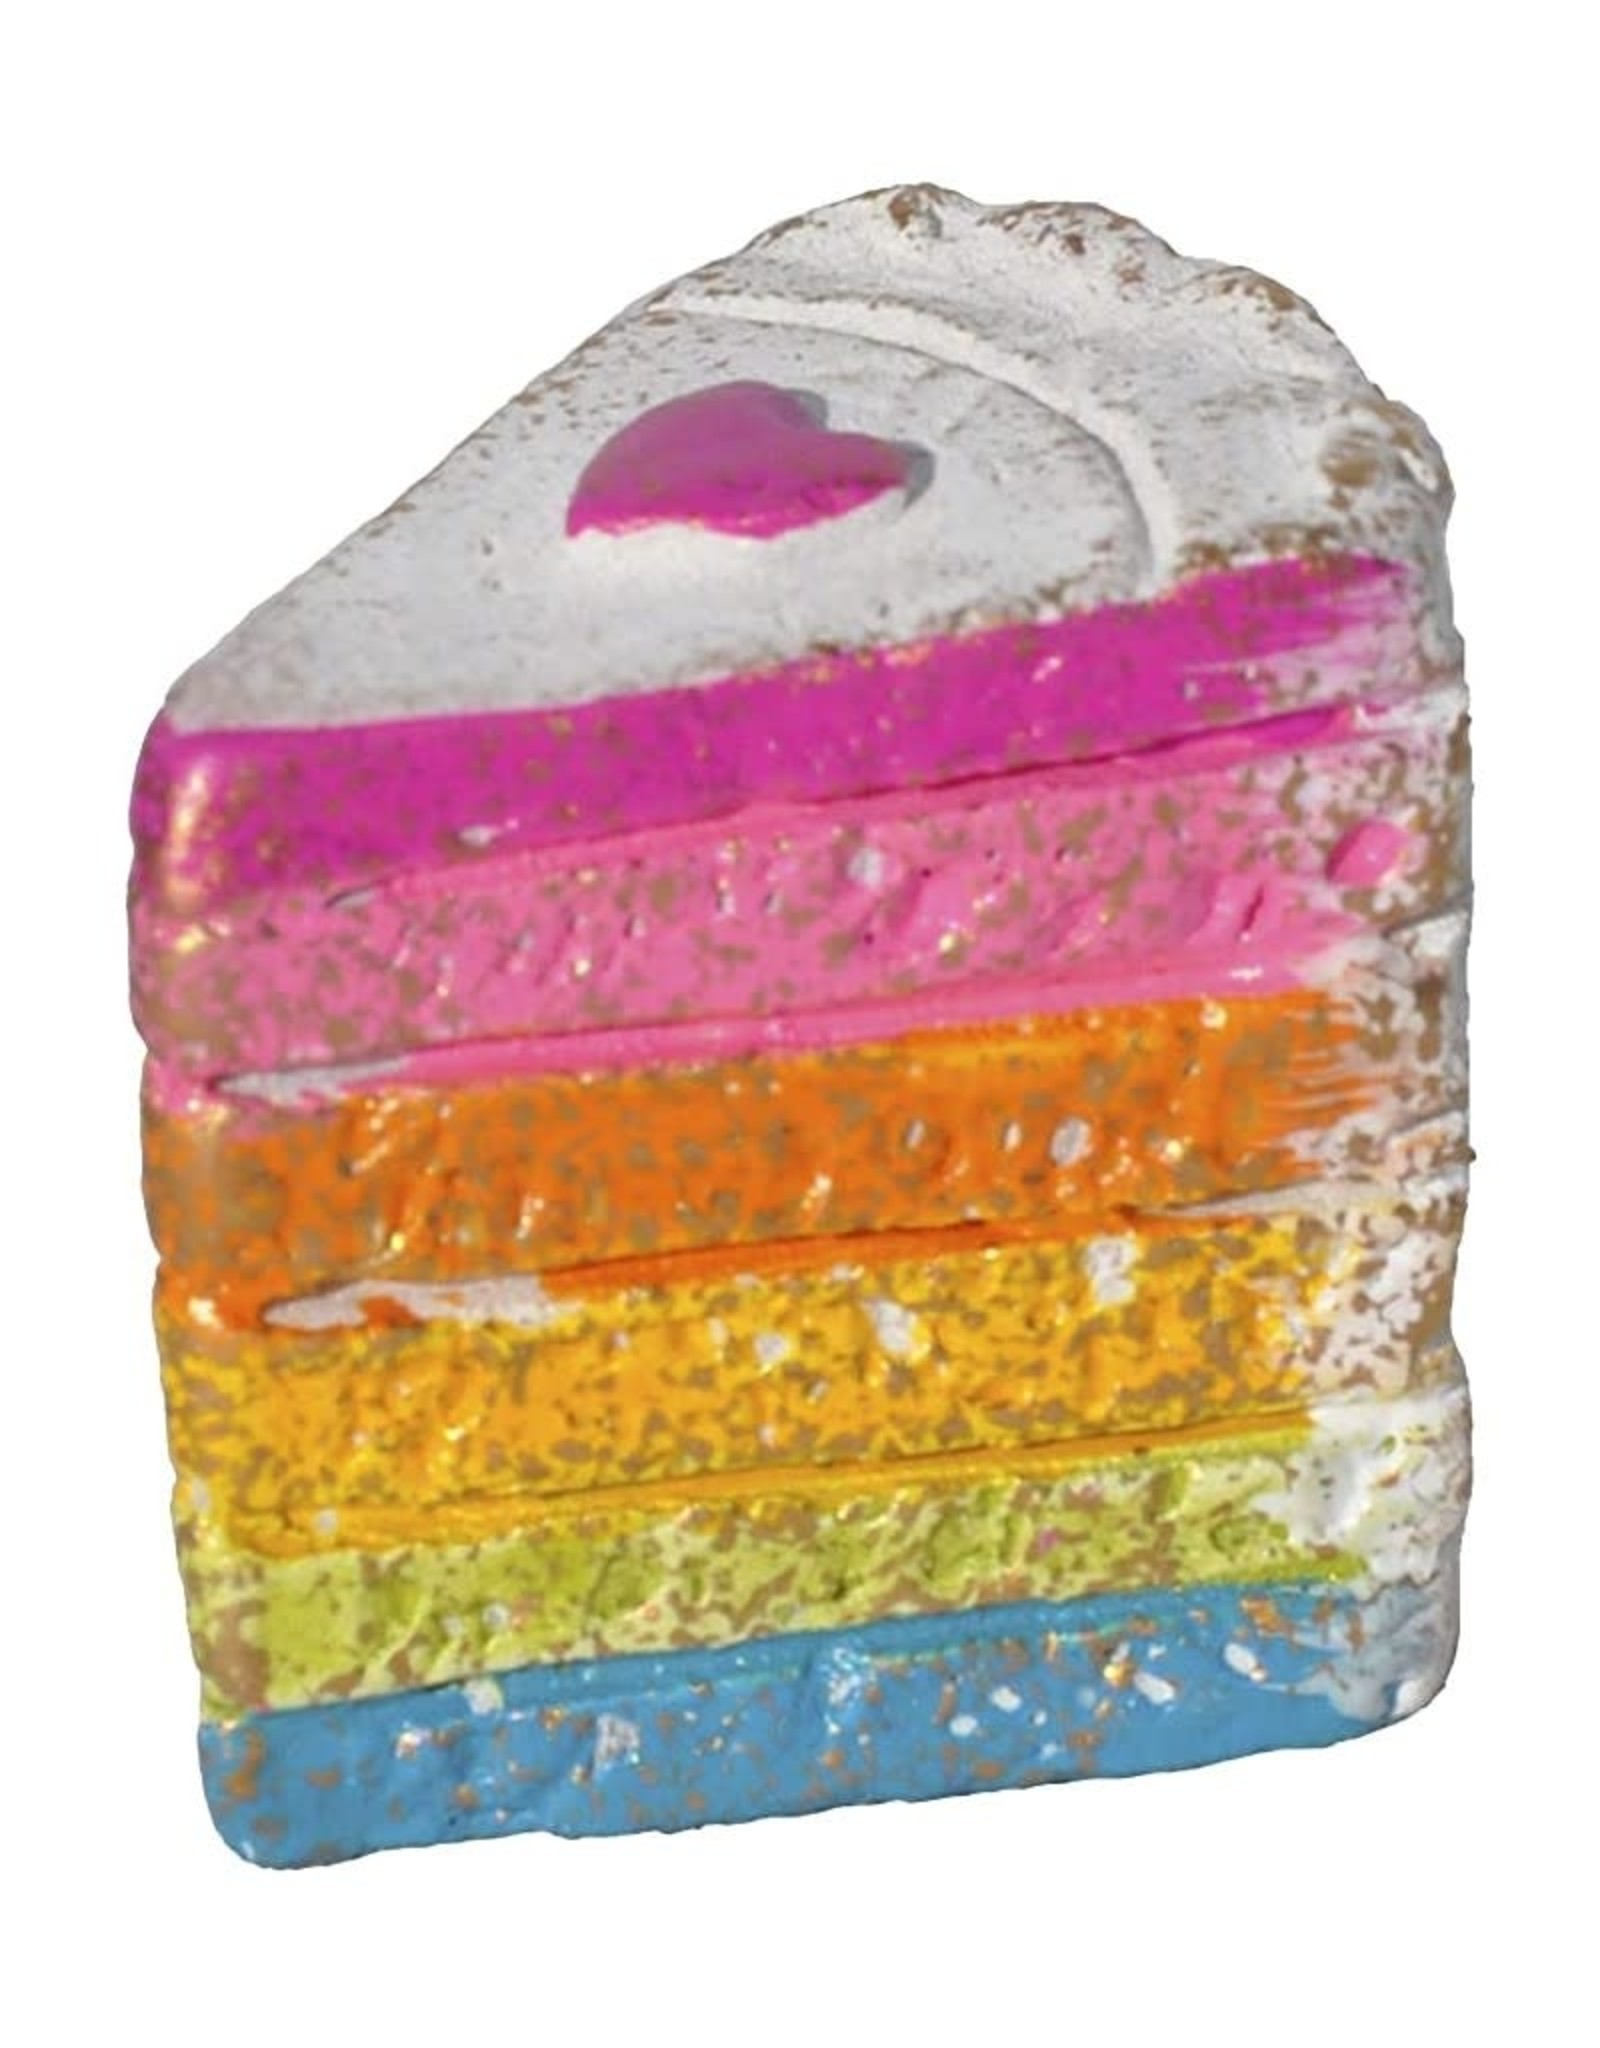 Studio M Mini Magical Rainbow Cake